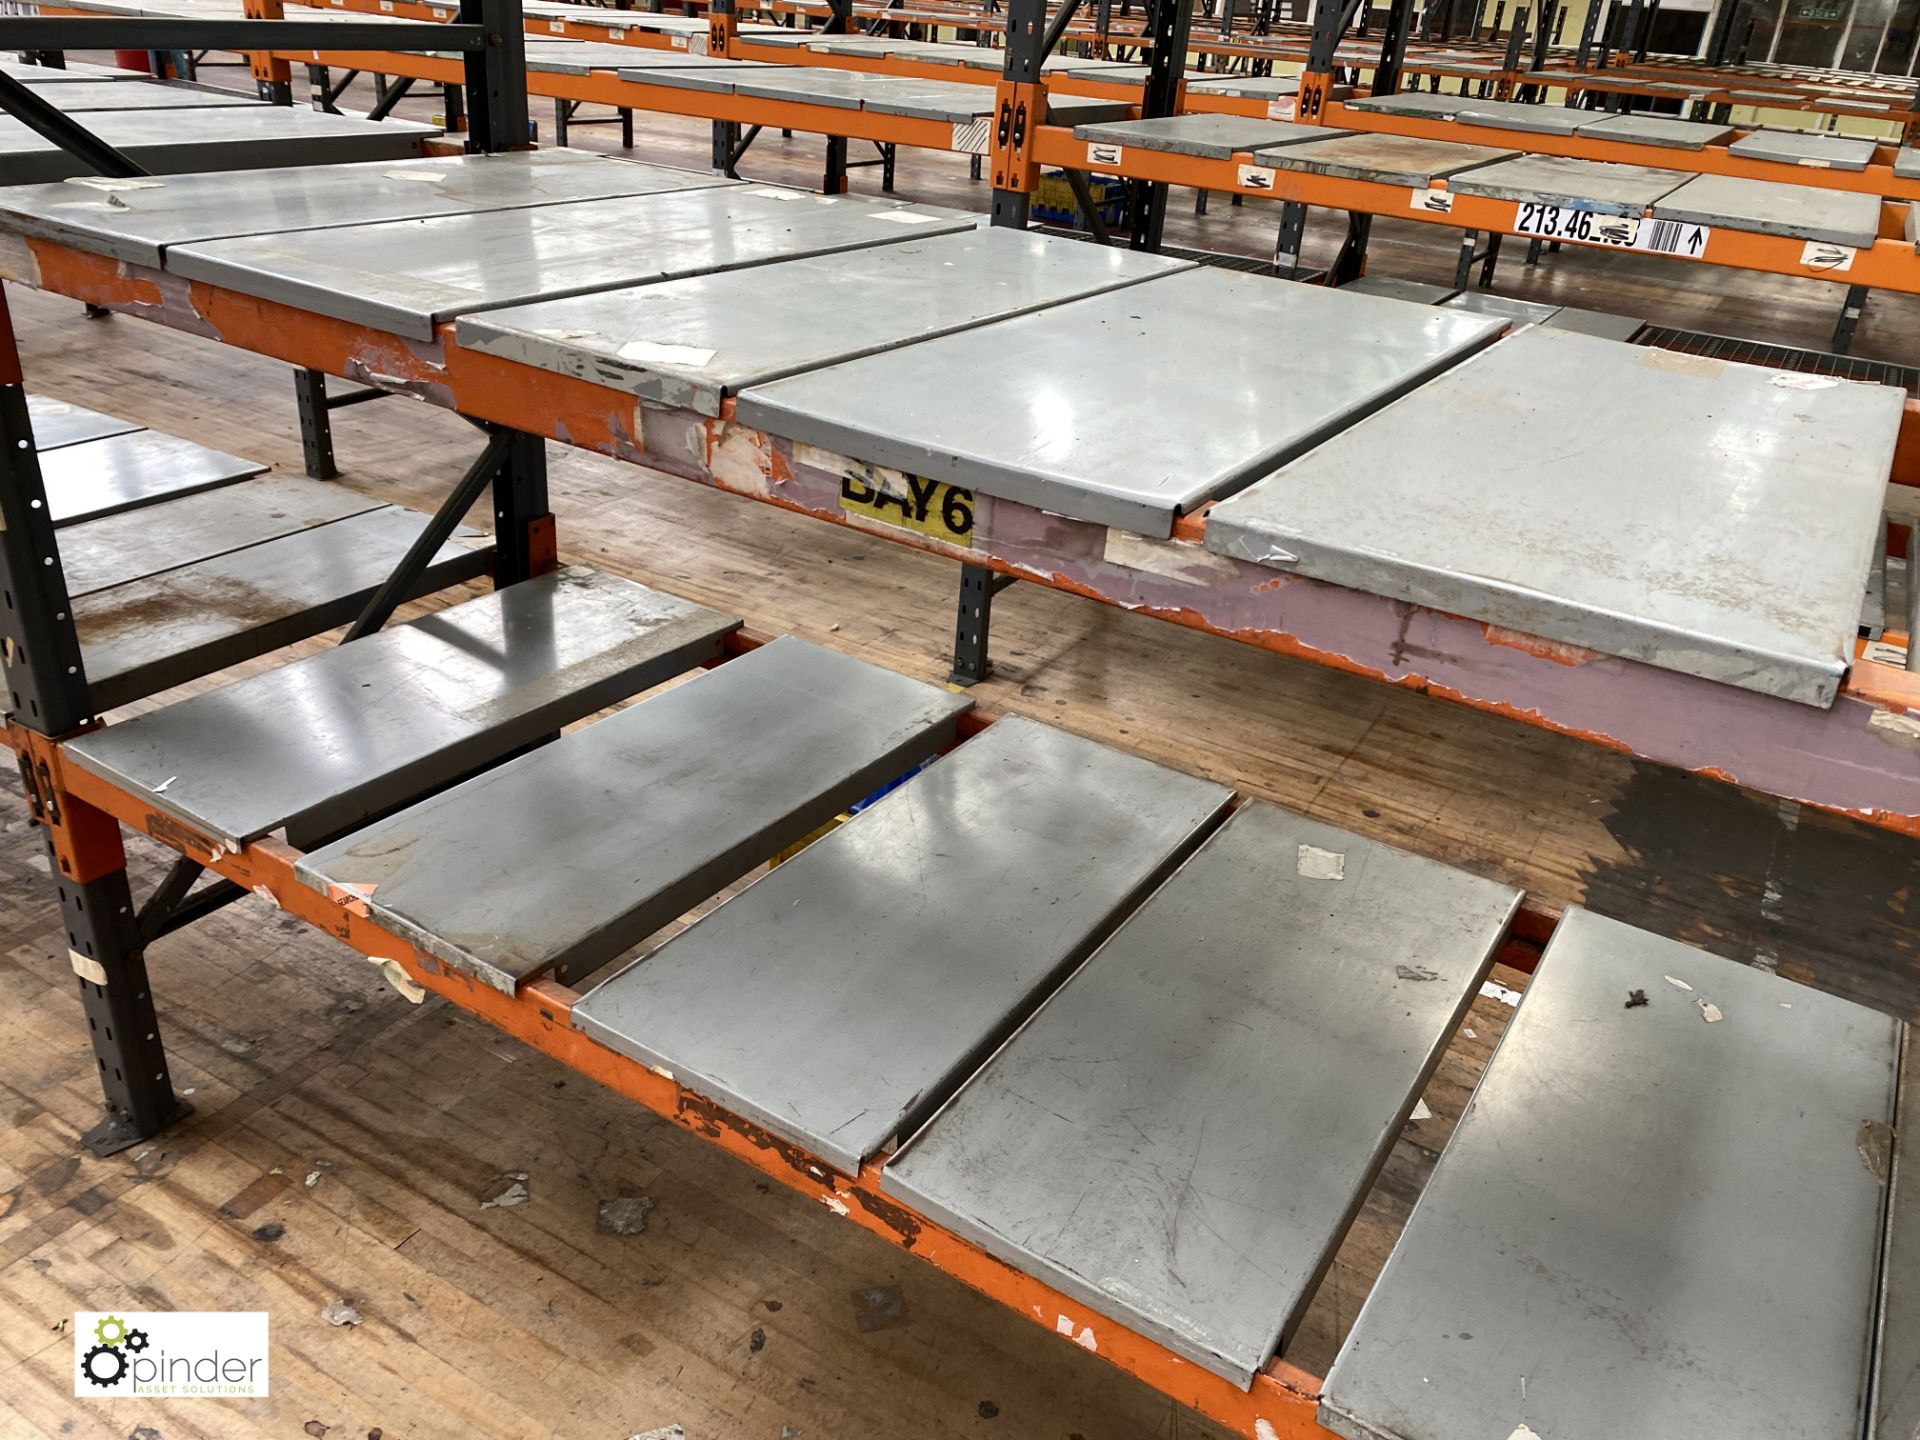 10 bays Dexion Speedlock boltless Racking, comprising 11 uprights 1835mm x 910mm, 40 beams 2450mm, - Image 5 of 5